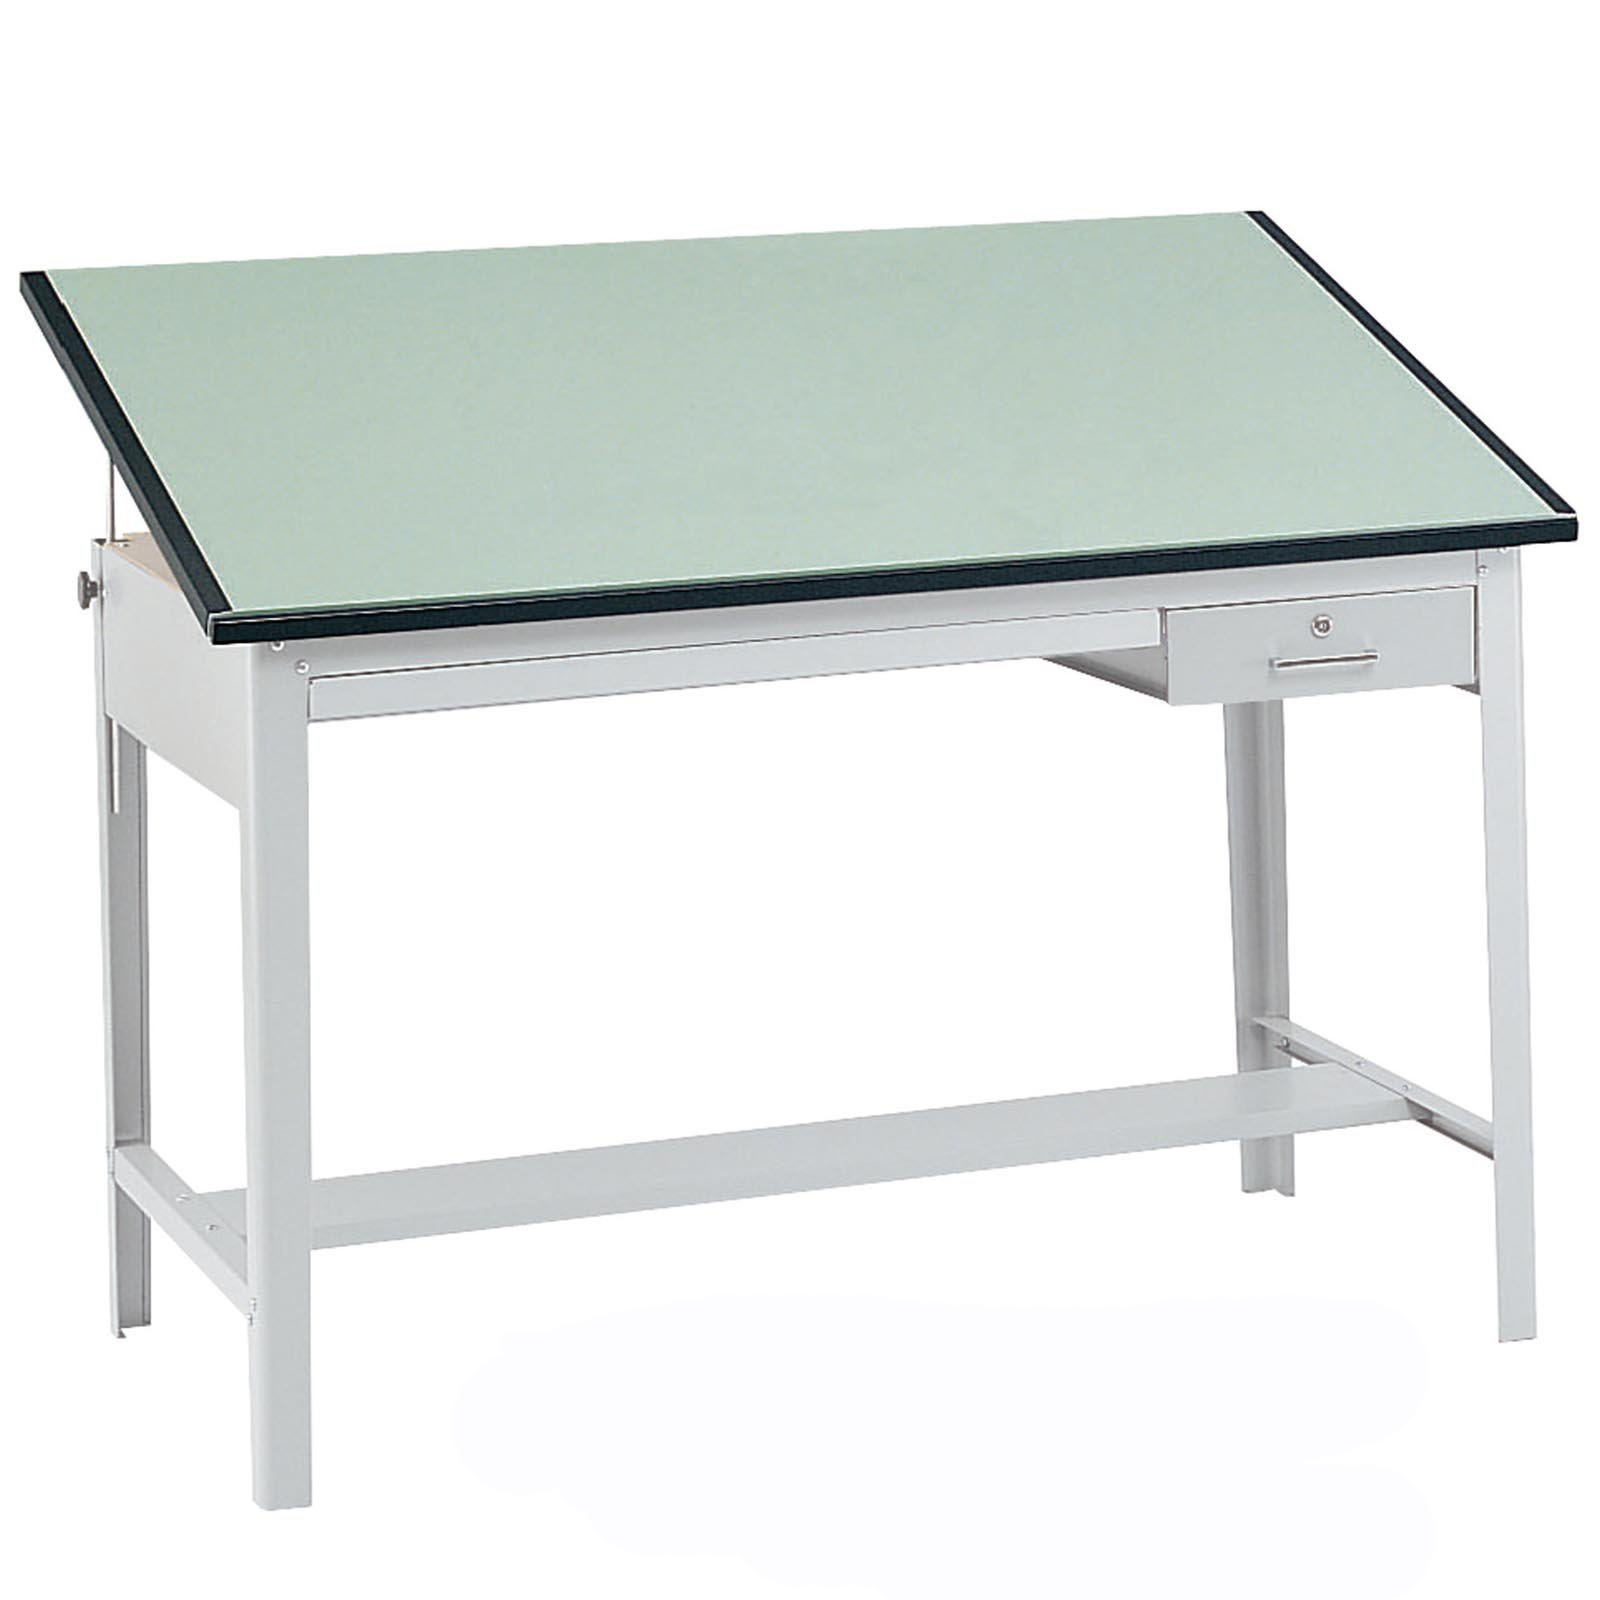 Adjustable Drafting Table Benefits